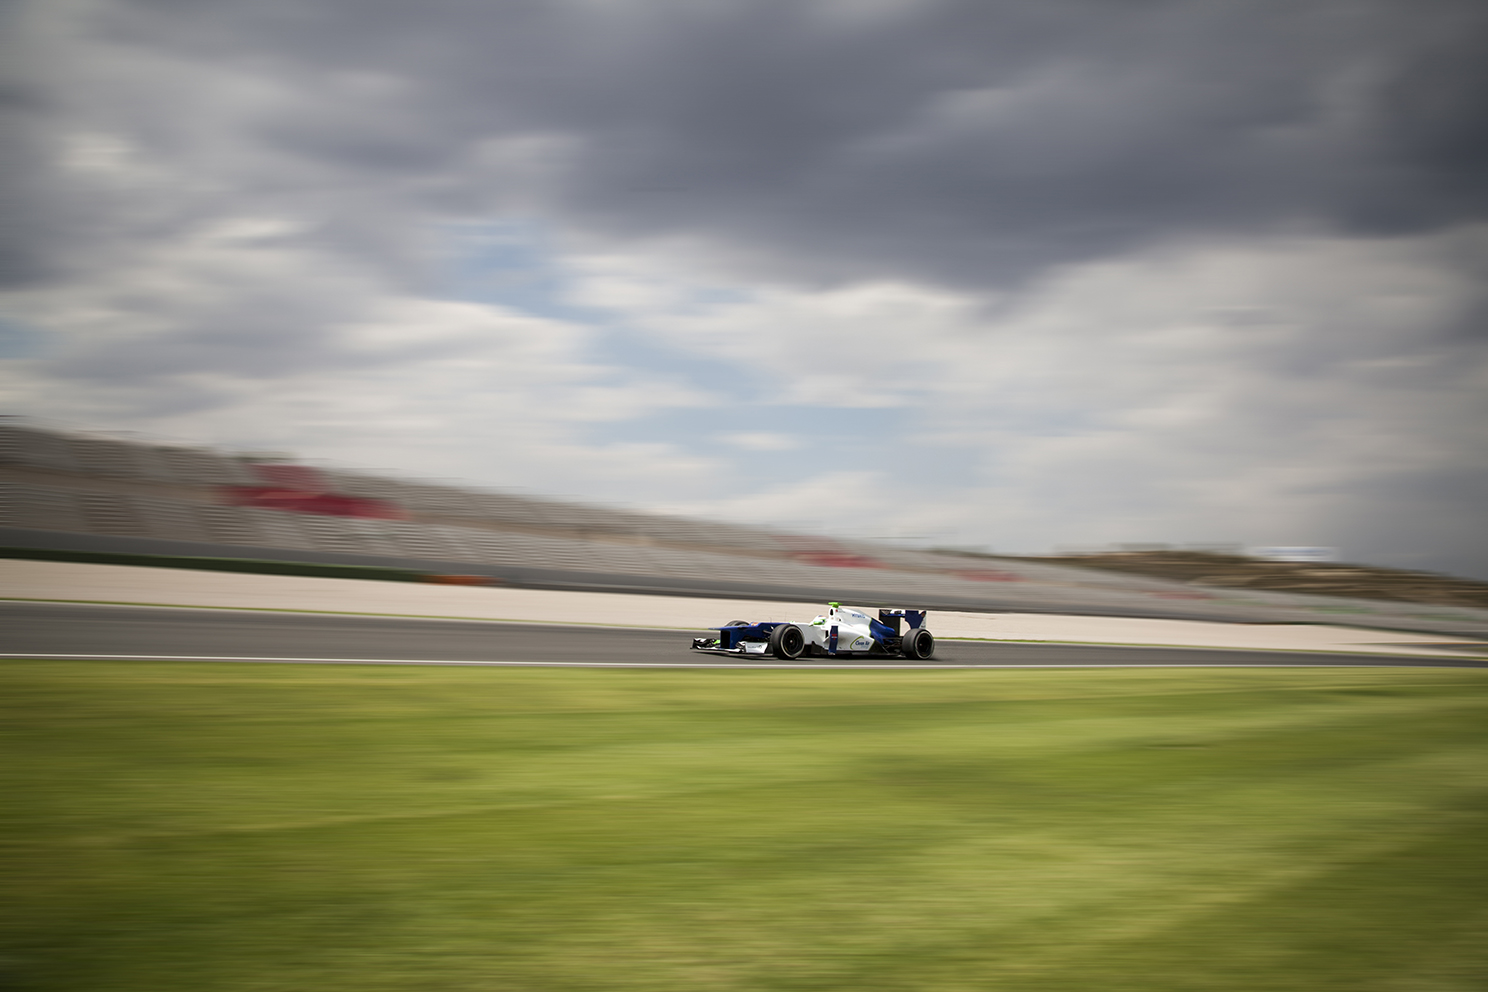 Racing driver Simona di Silvestro testing for the Sauber Formula one team in Valencia.